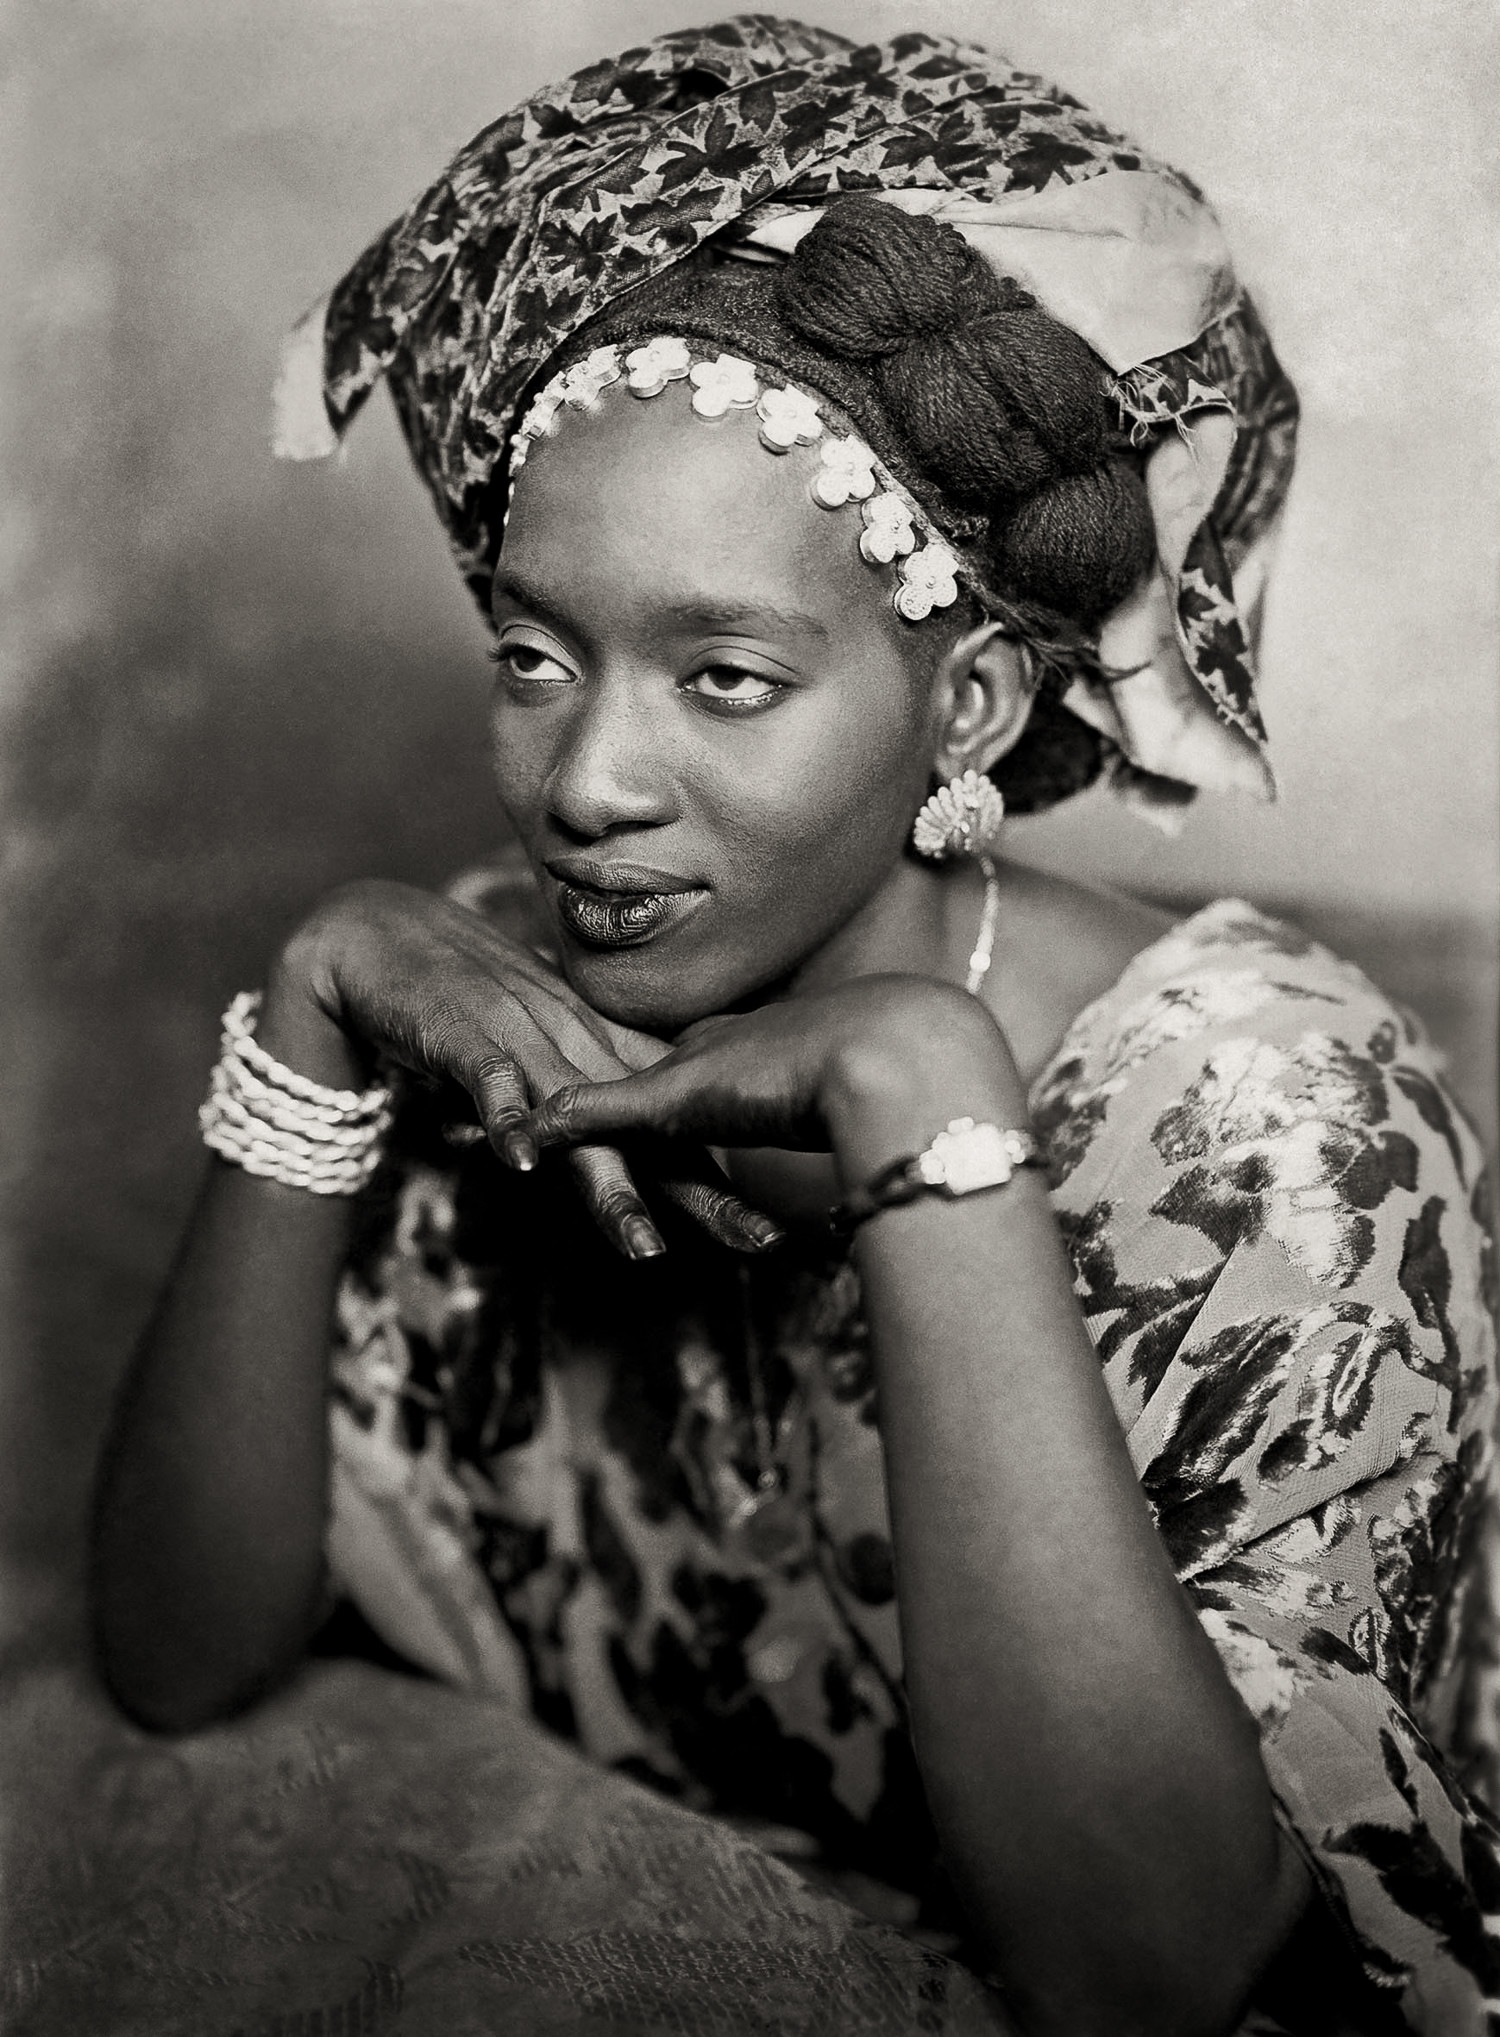 © photo Mama Casset, Portrait du Studio 'African Photo', Dakar 1950-1970